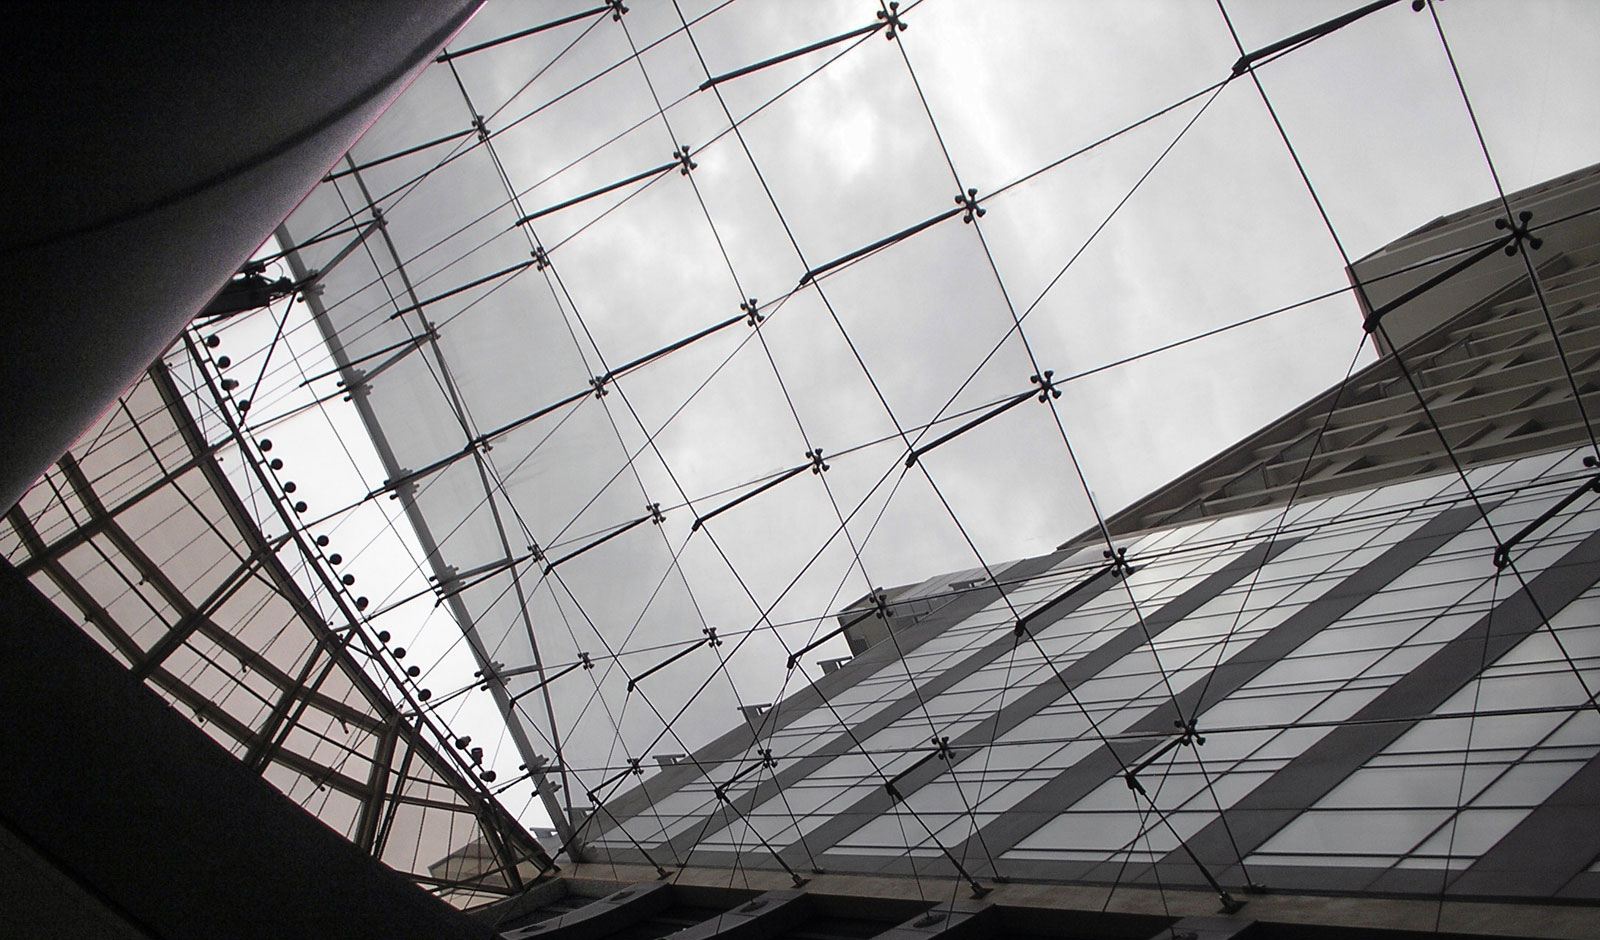 clear glass opens the atrium to the sky